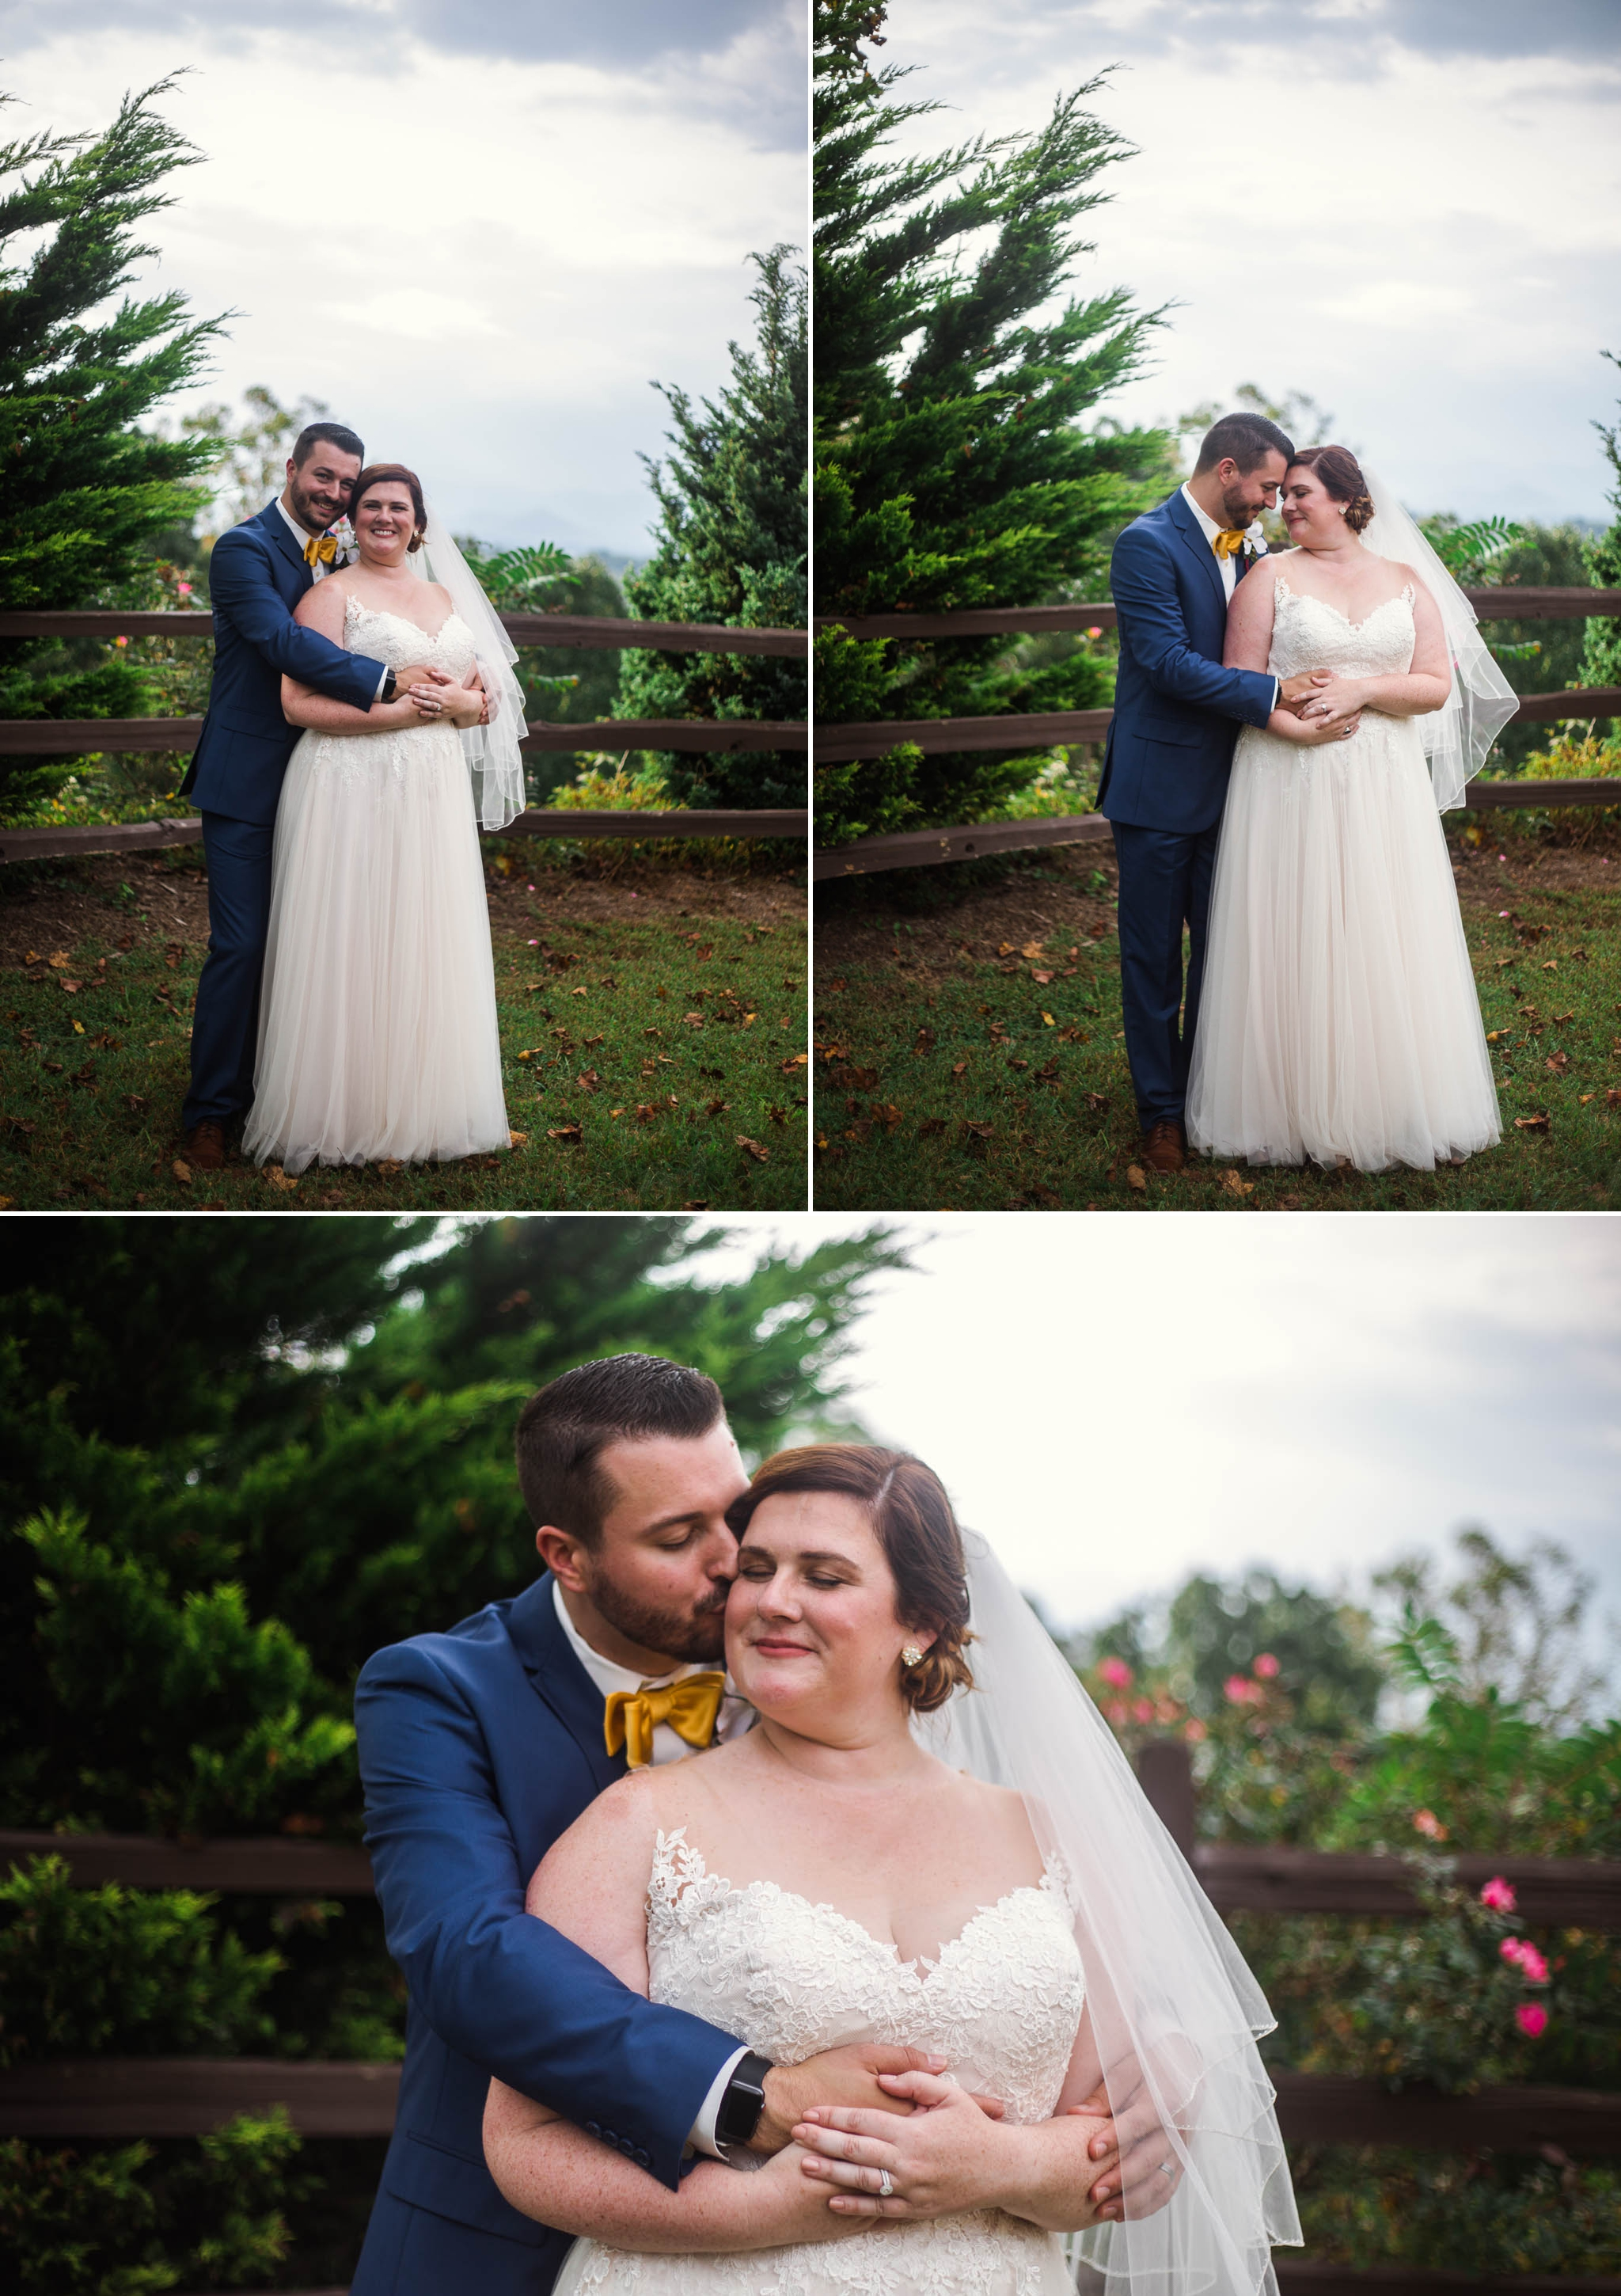 Portraits of Bride and groom overlooking the Blue Ridge Mountains - Meredith + Jason - The Crest Center and Pavilion in Asheville, NC - Raleigh Wedding Photographer